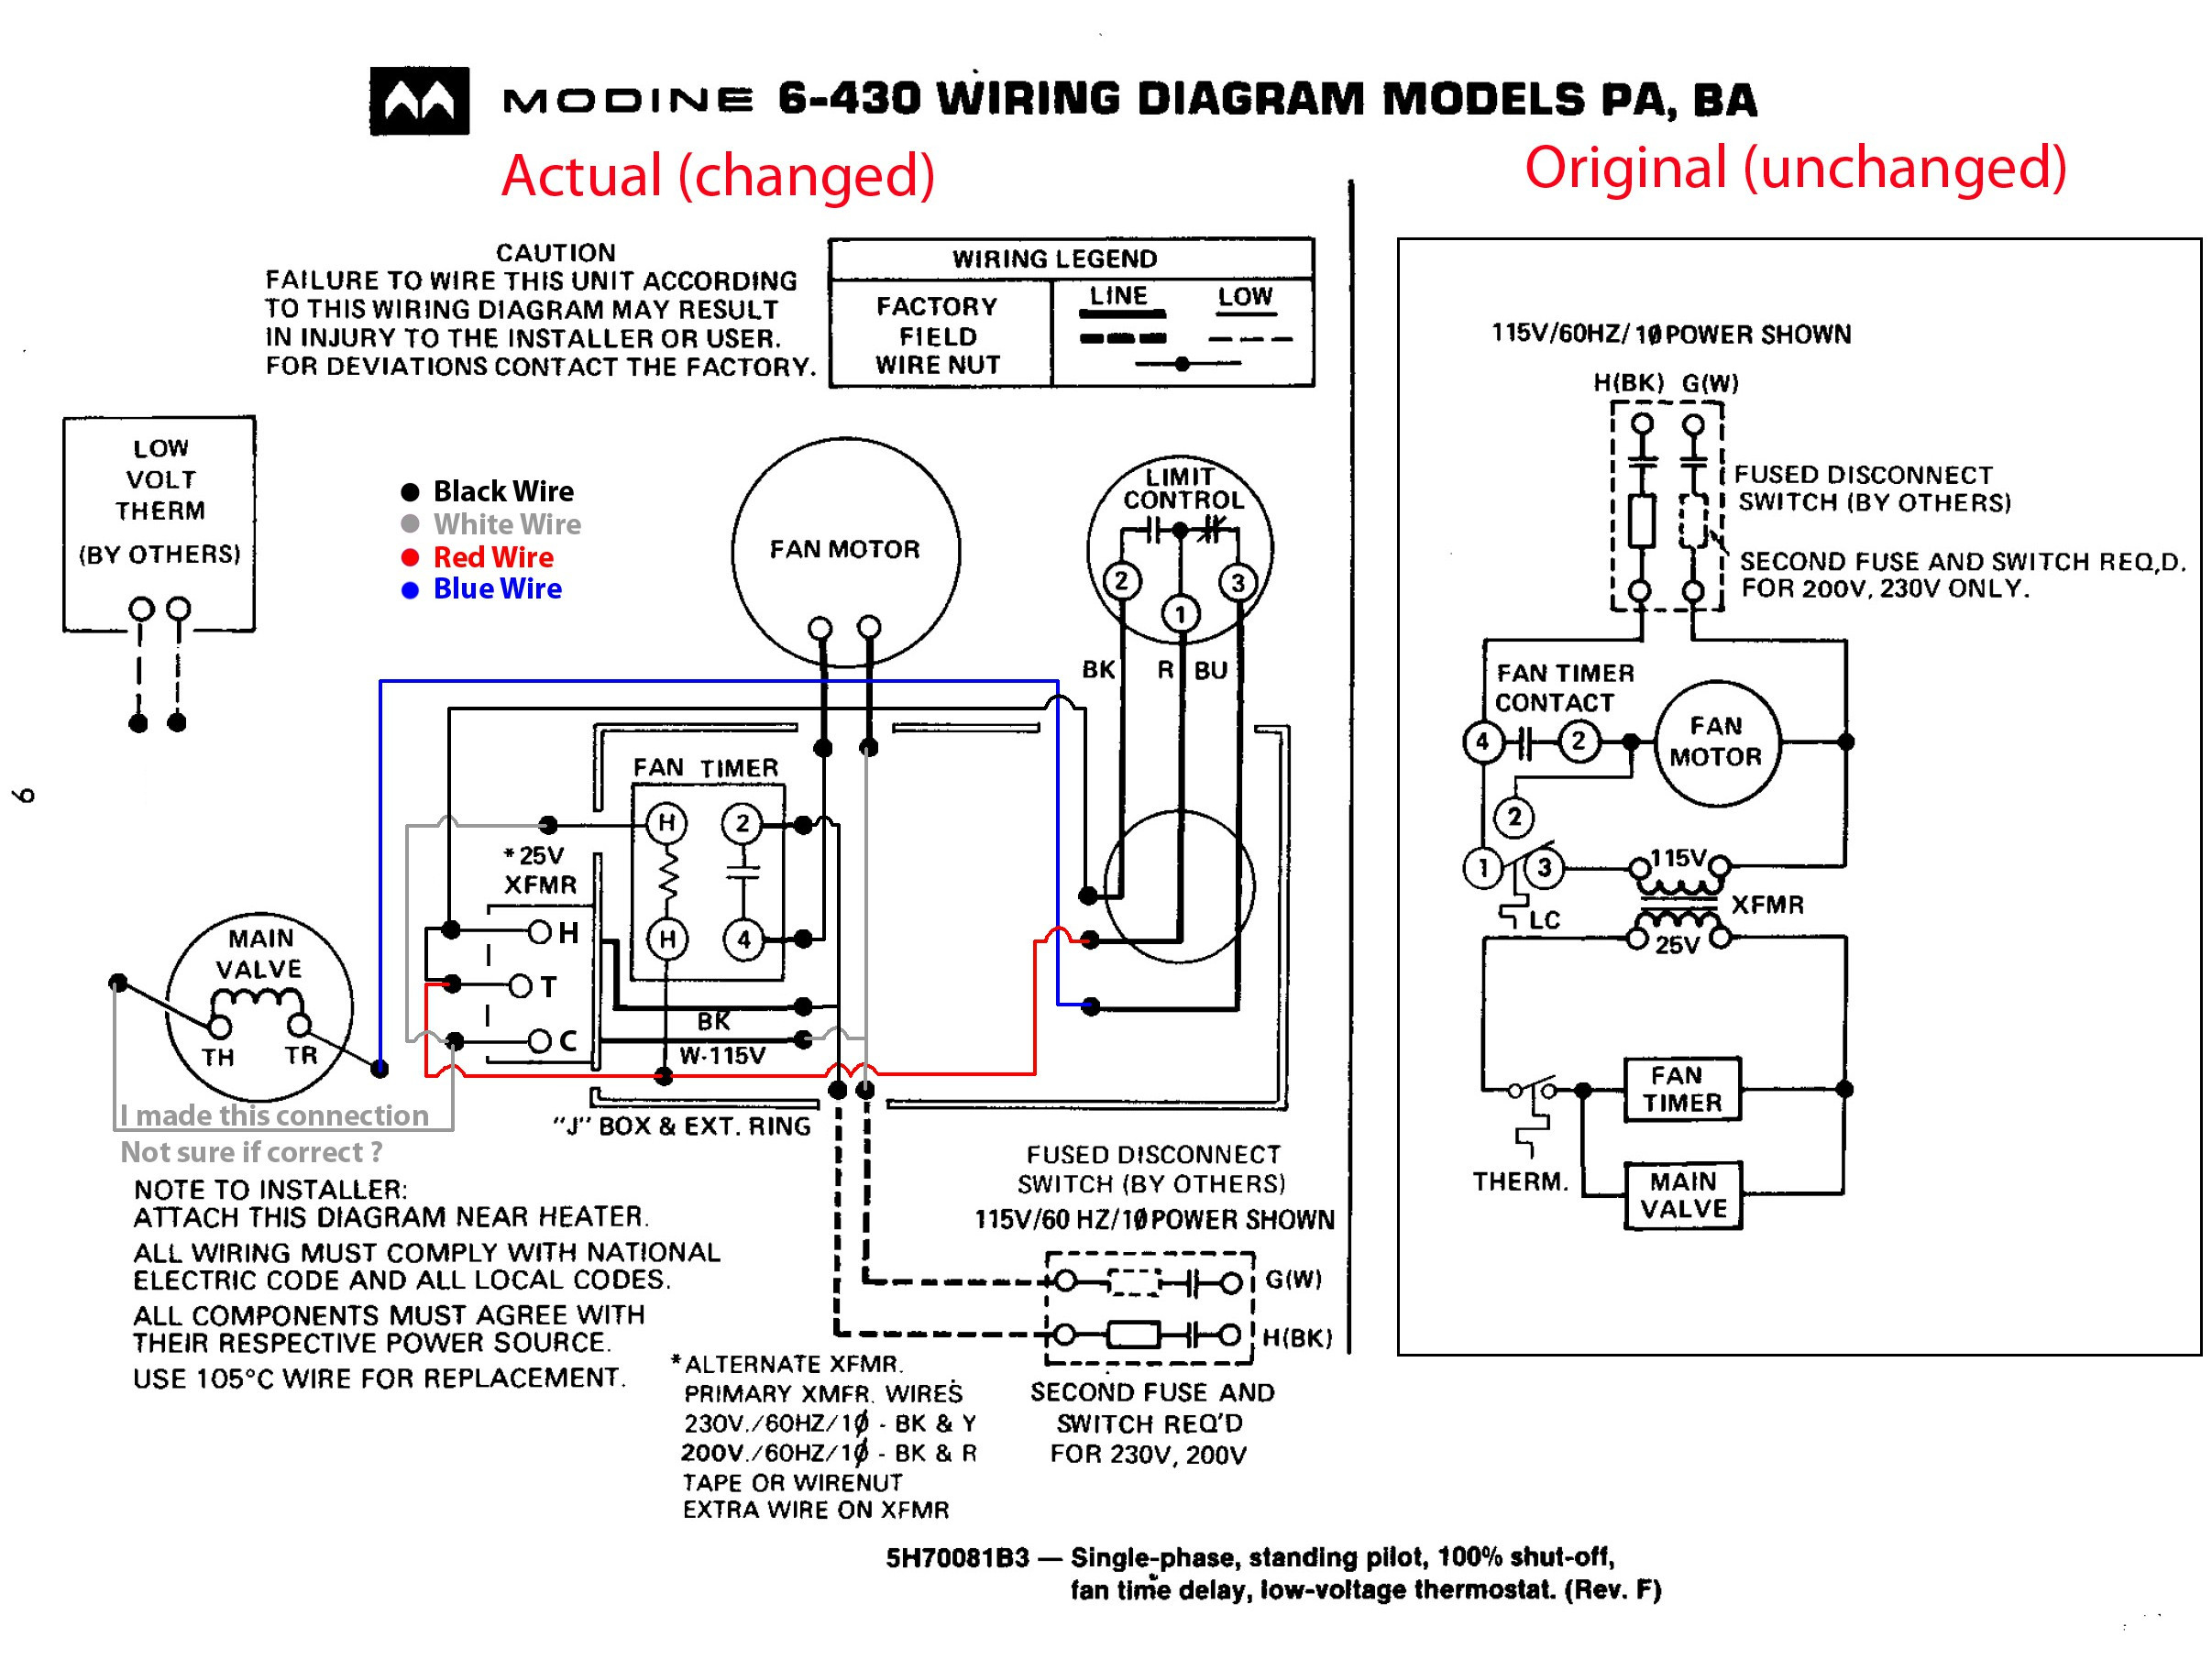 modine gas heater wiring diagram Collection-modine gas heater wiring diagram wire center u2022 rh insurapro co 12-r